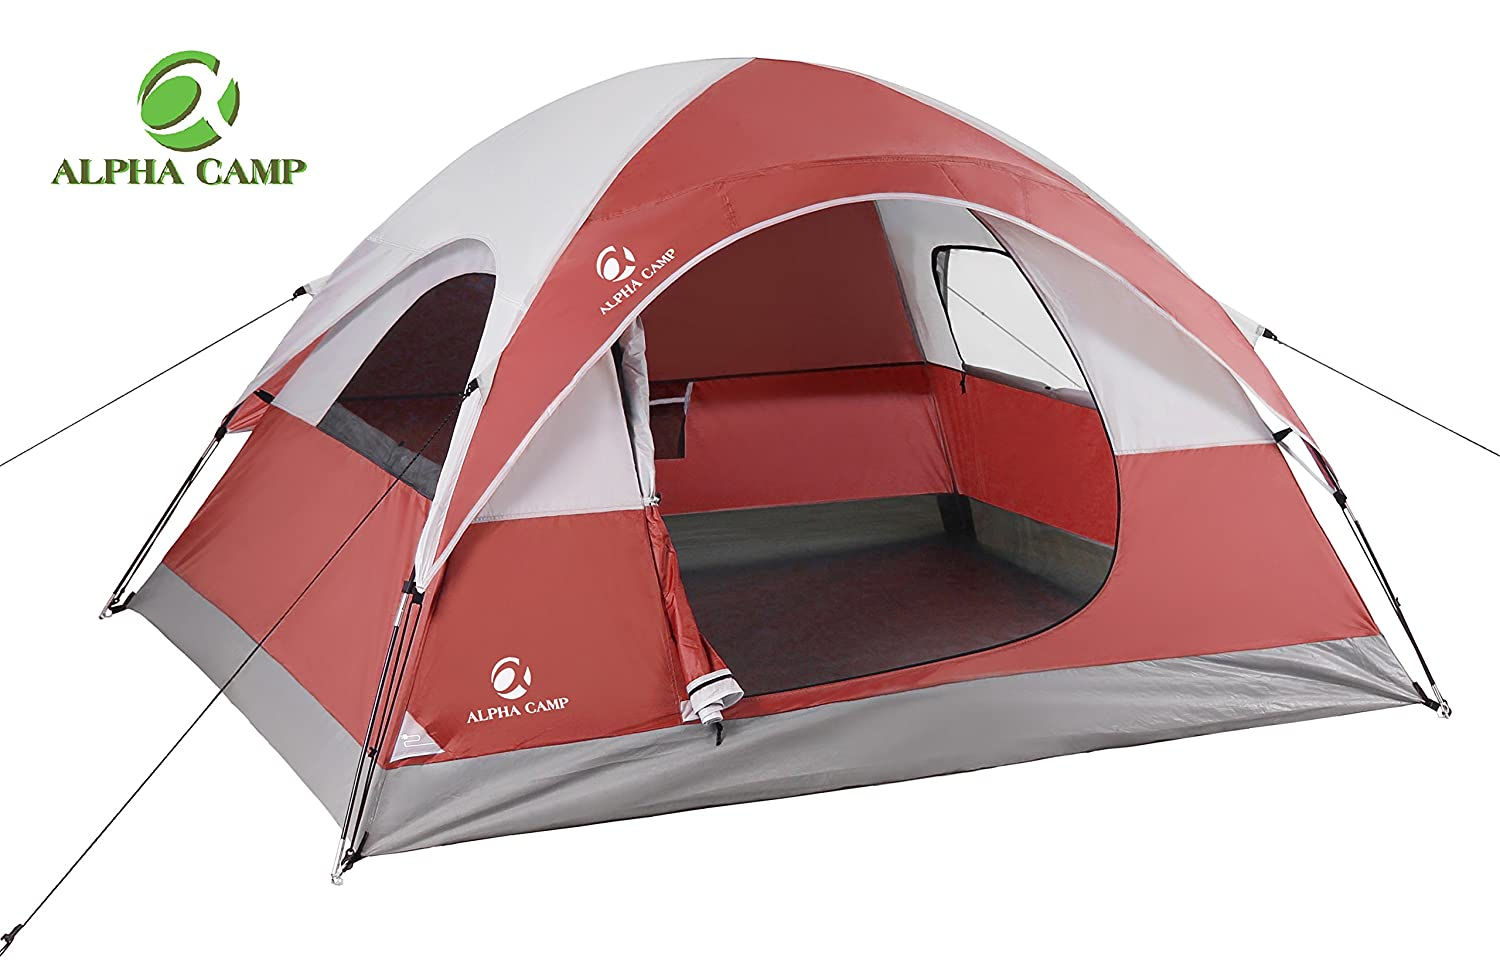 Tents Amp Shelters Online Shopping For Clothing Shoes